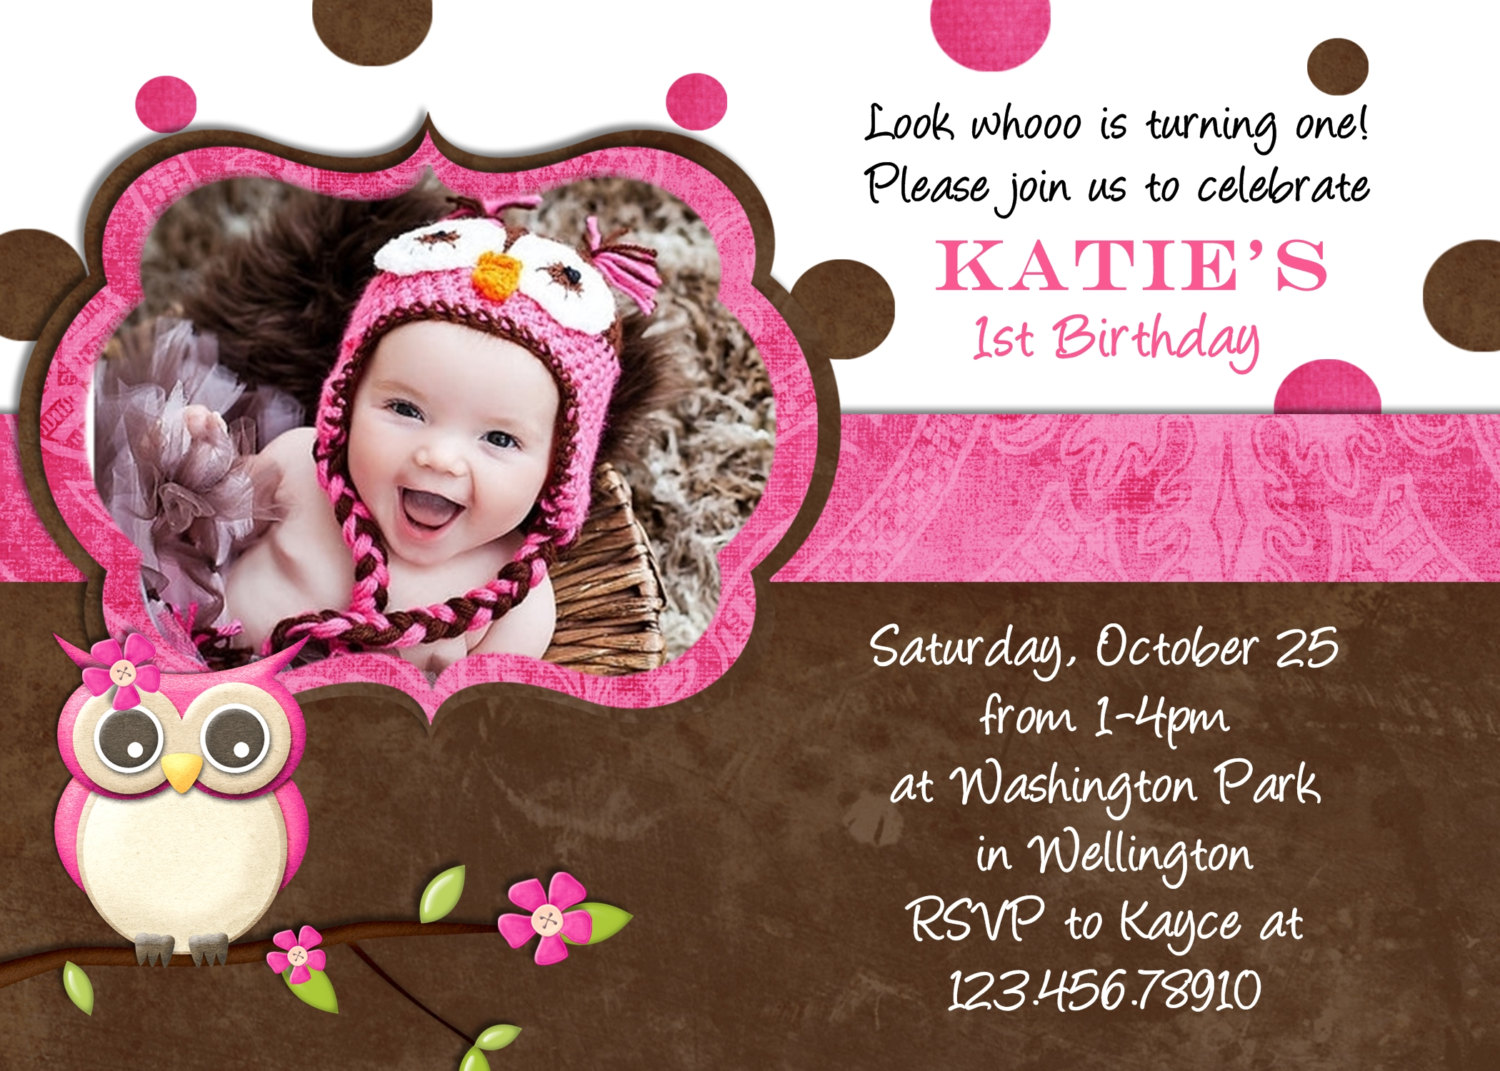 baby girl birthday invitation card design ; awesome-sample-birthday-invitations-cards-colorful-ideas-brown-color-pink-real-picture-baby-girls-owl-wording